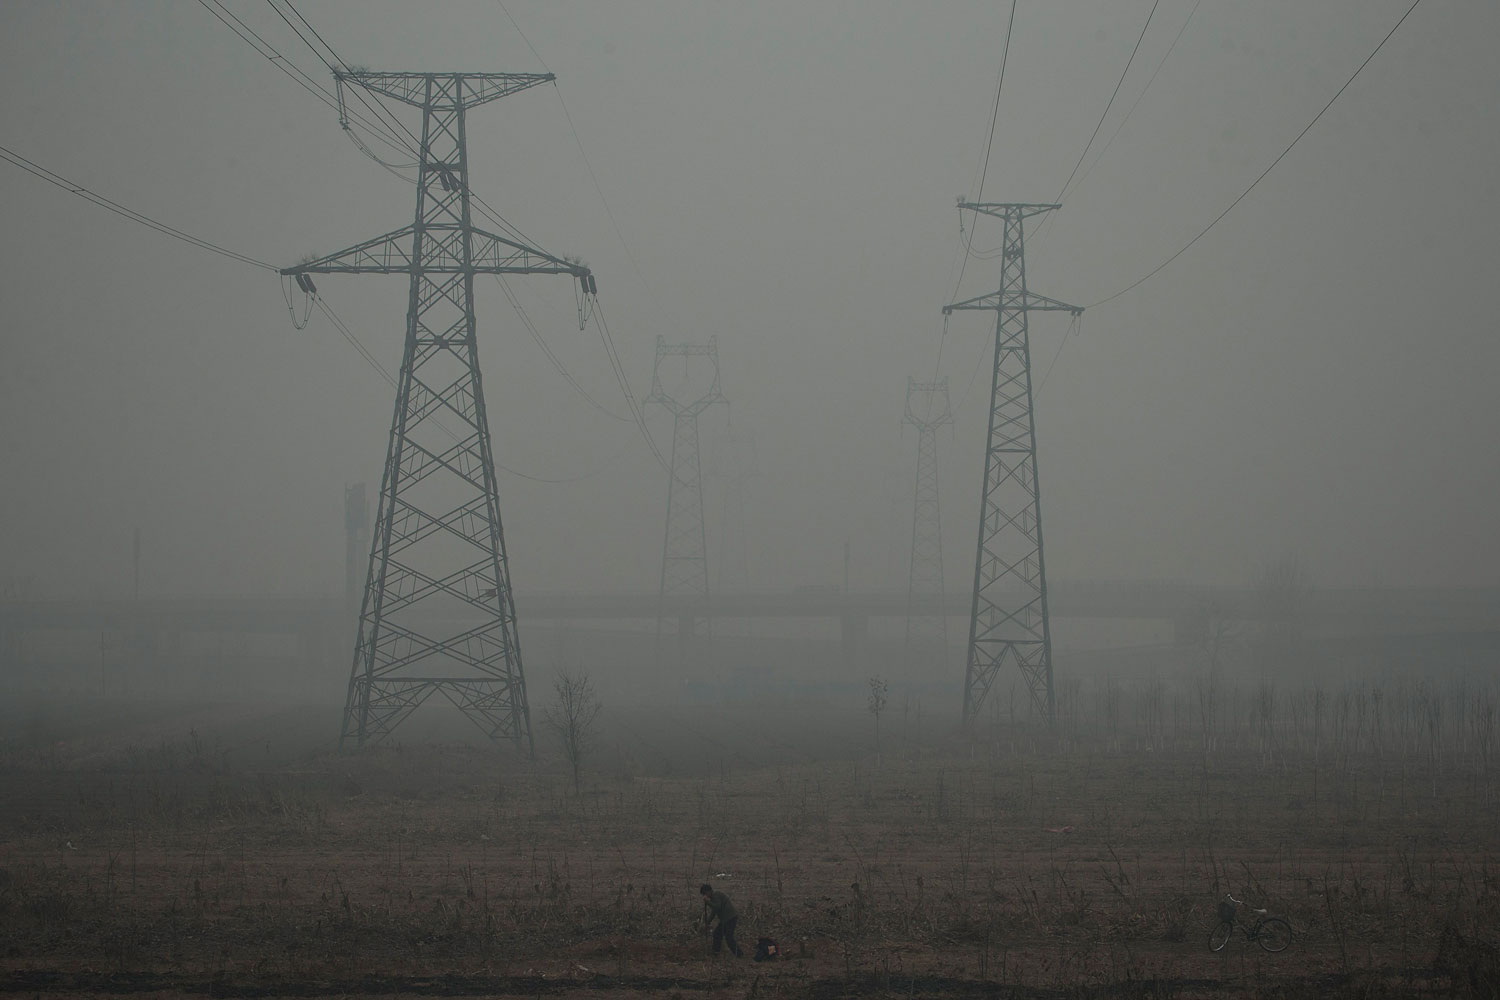 A farmer shovels in a field near electric pylons in heavy haze on a severely polluted day in Shijiazhuang, in northern China's Hebei province, Feb. 26, 2014.